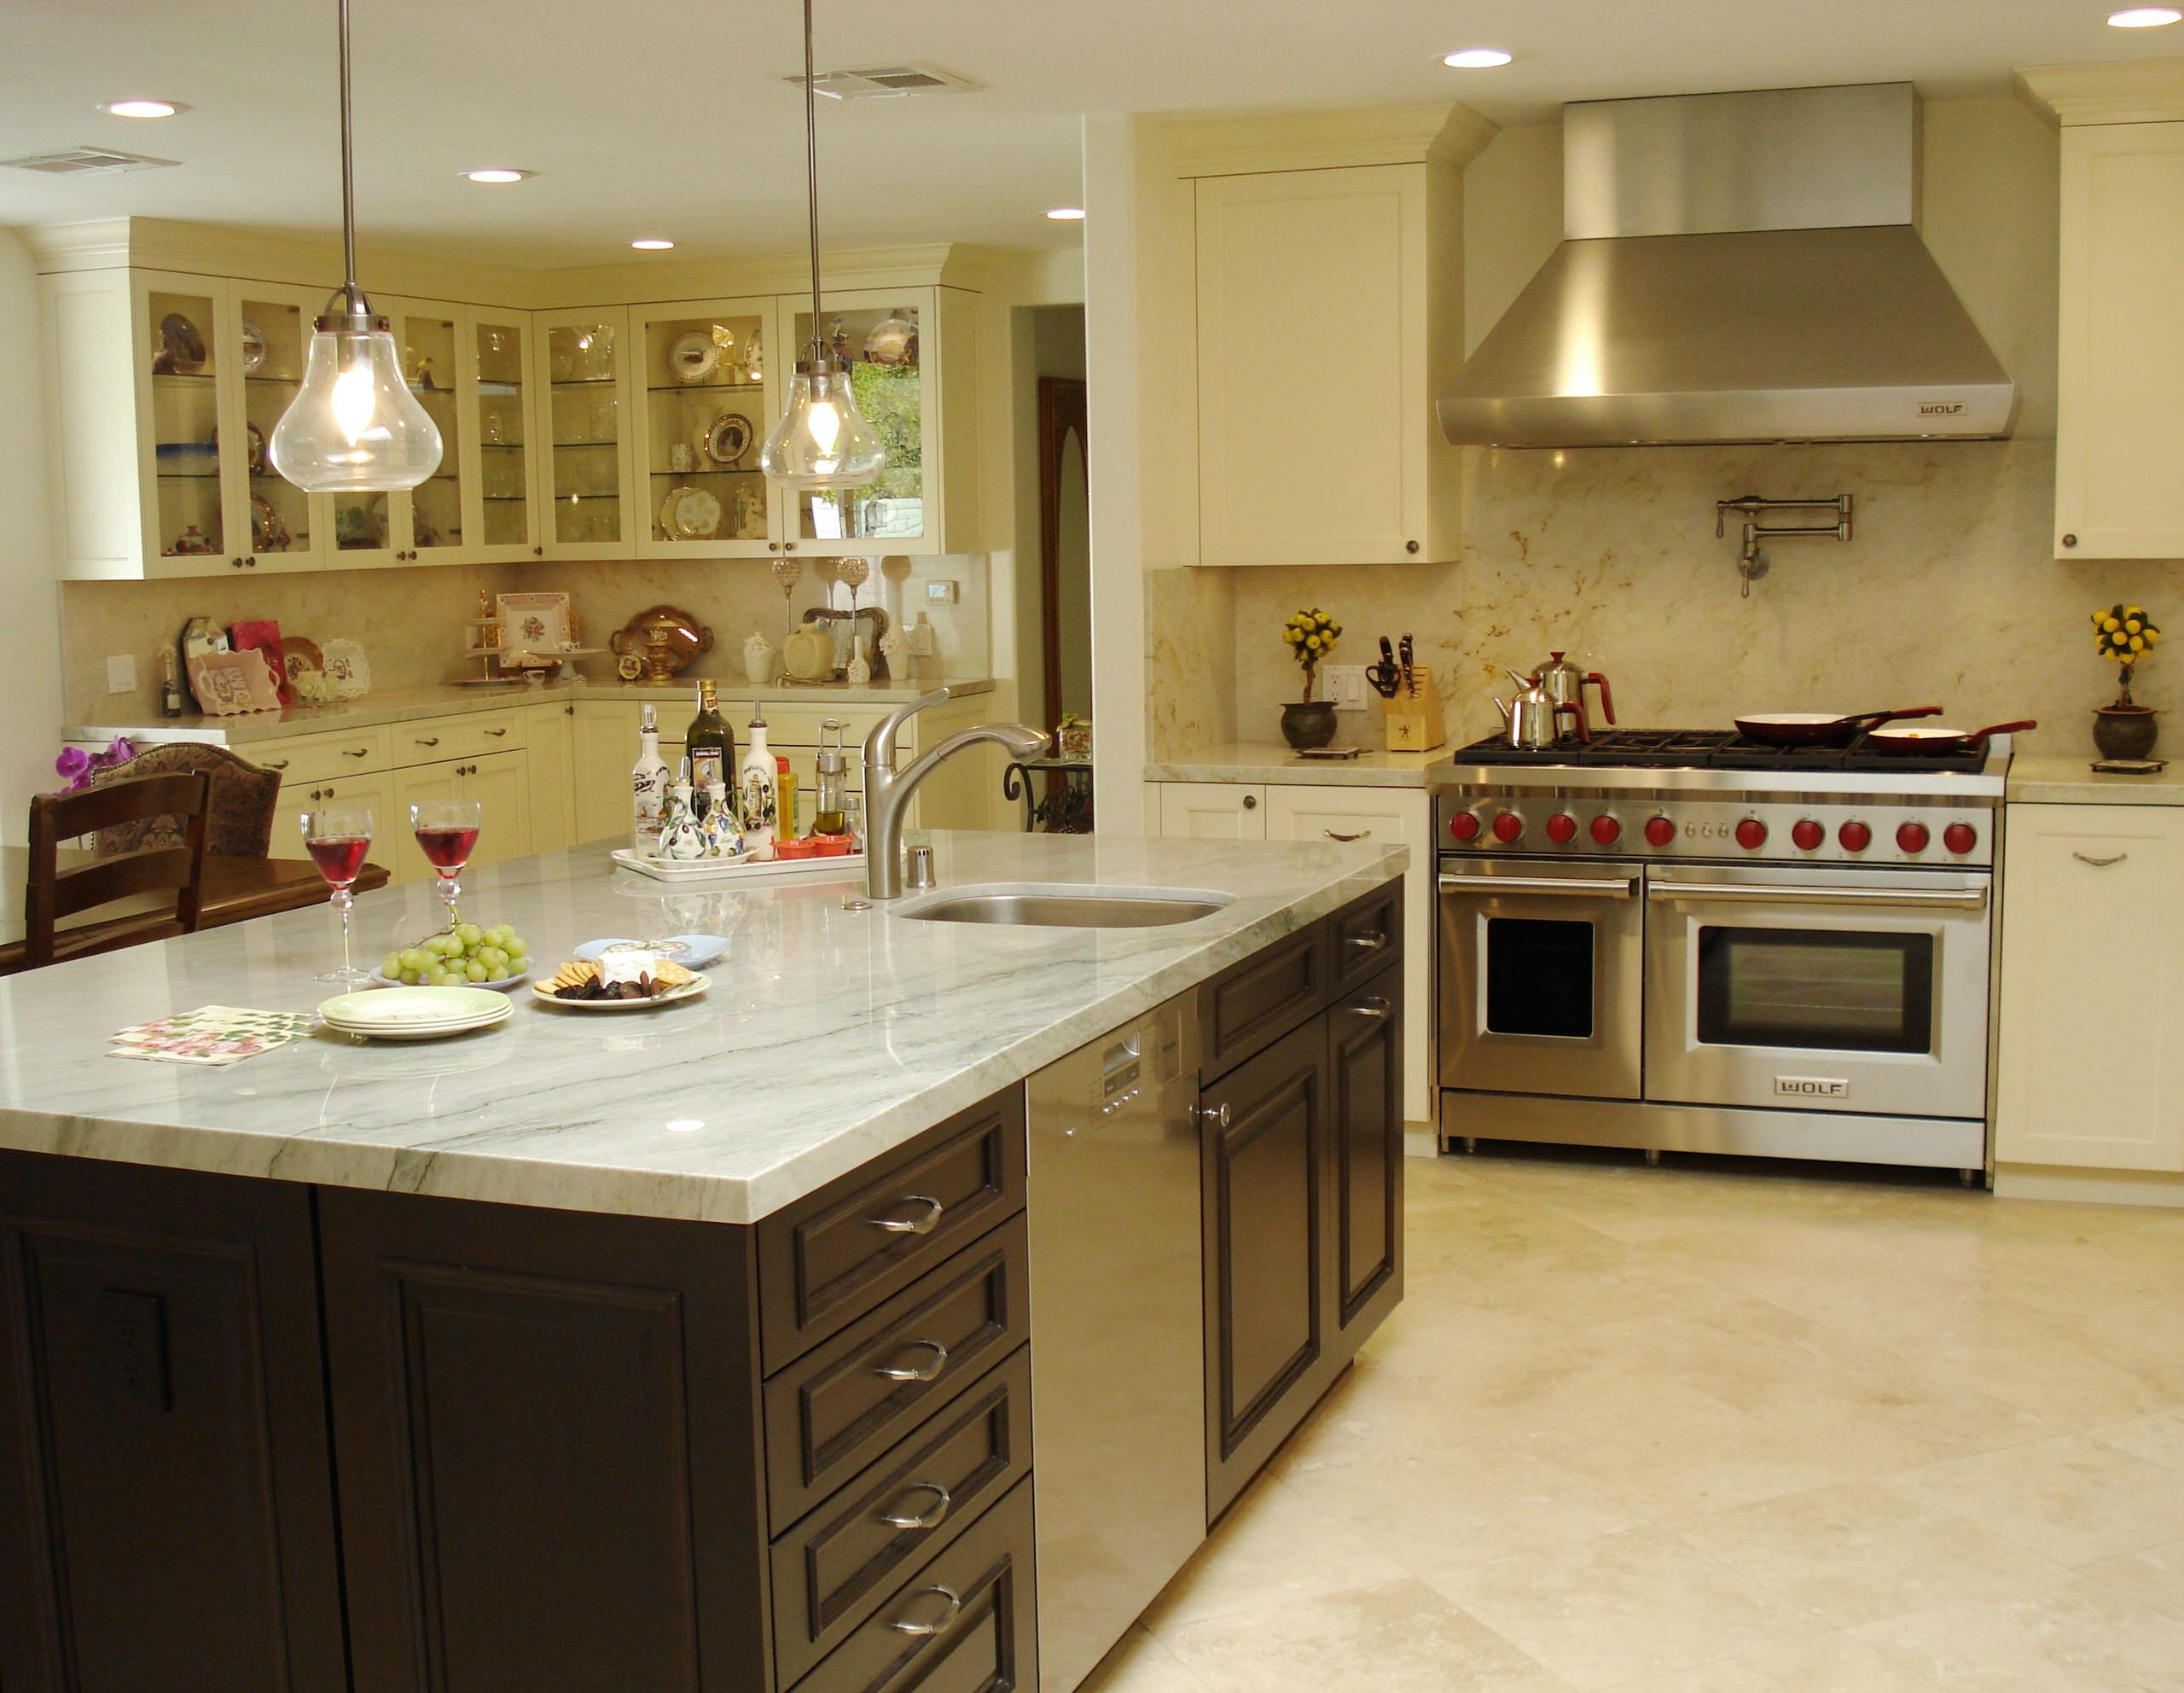 My Kitchen Remodel for a Bel Air, California Estate